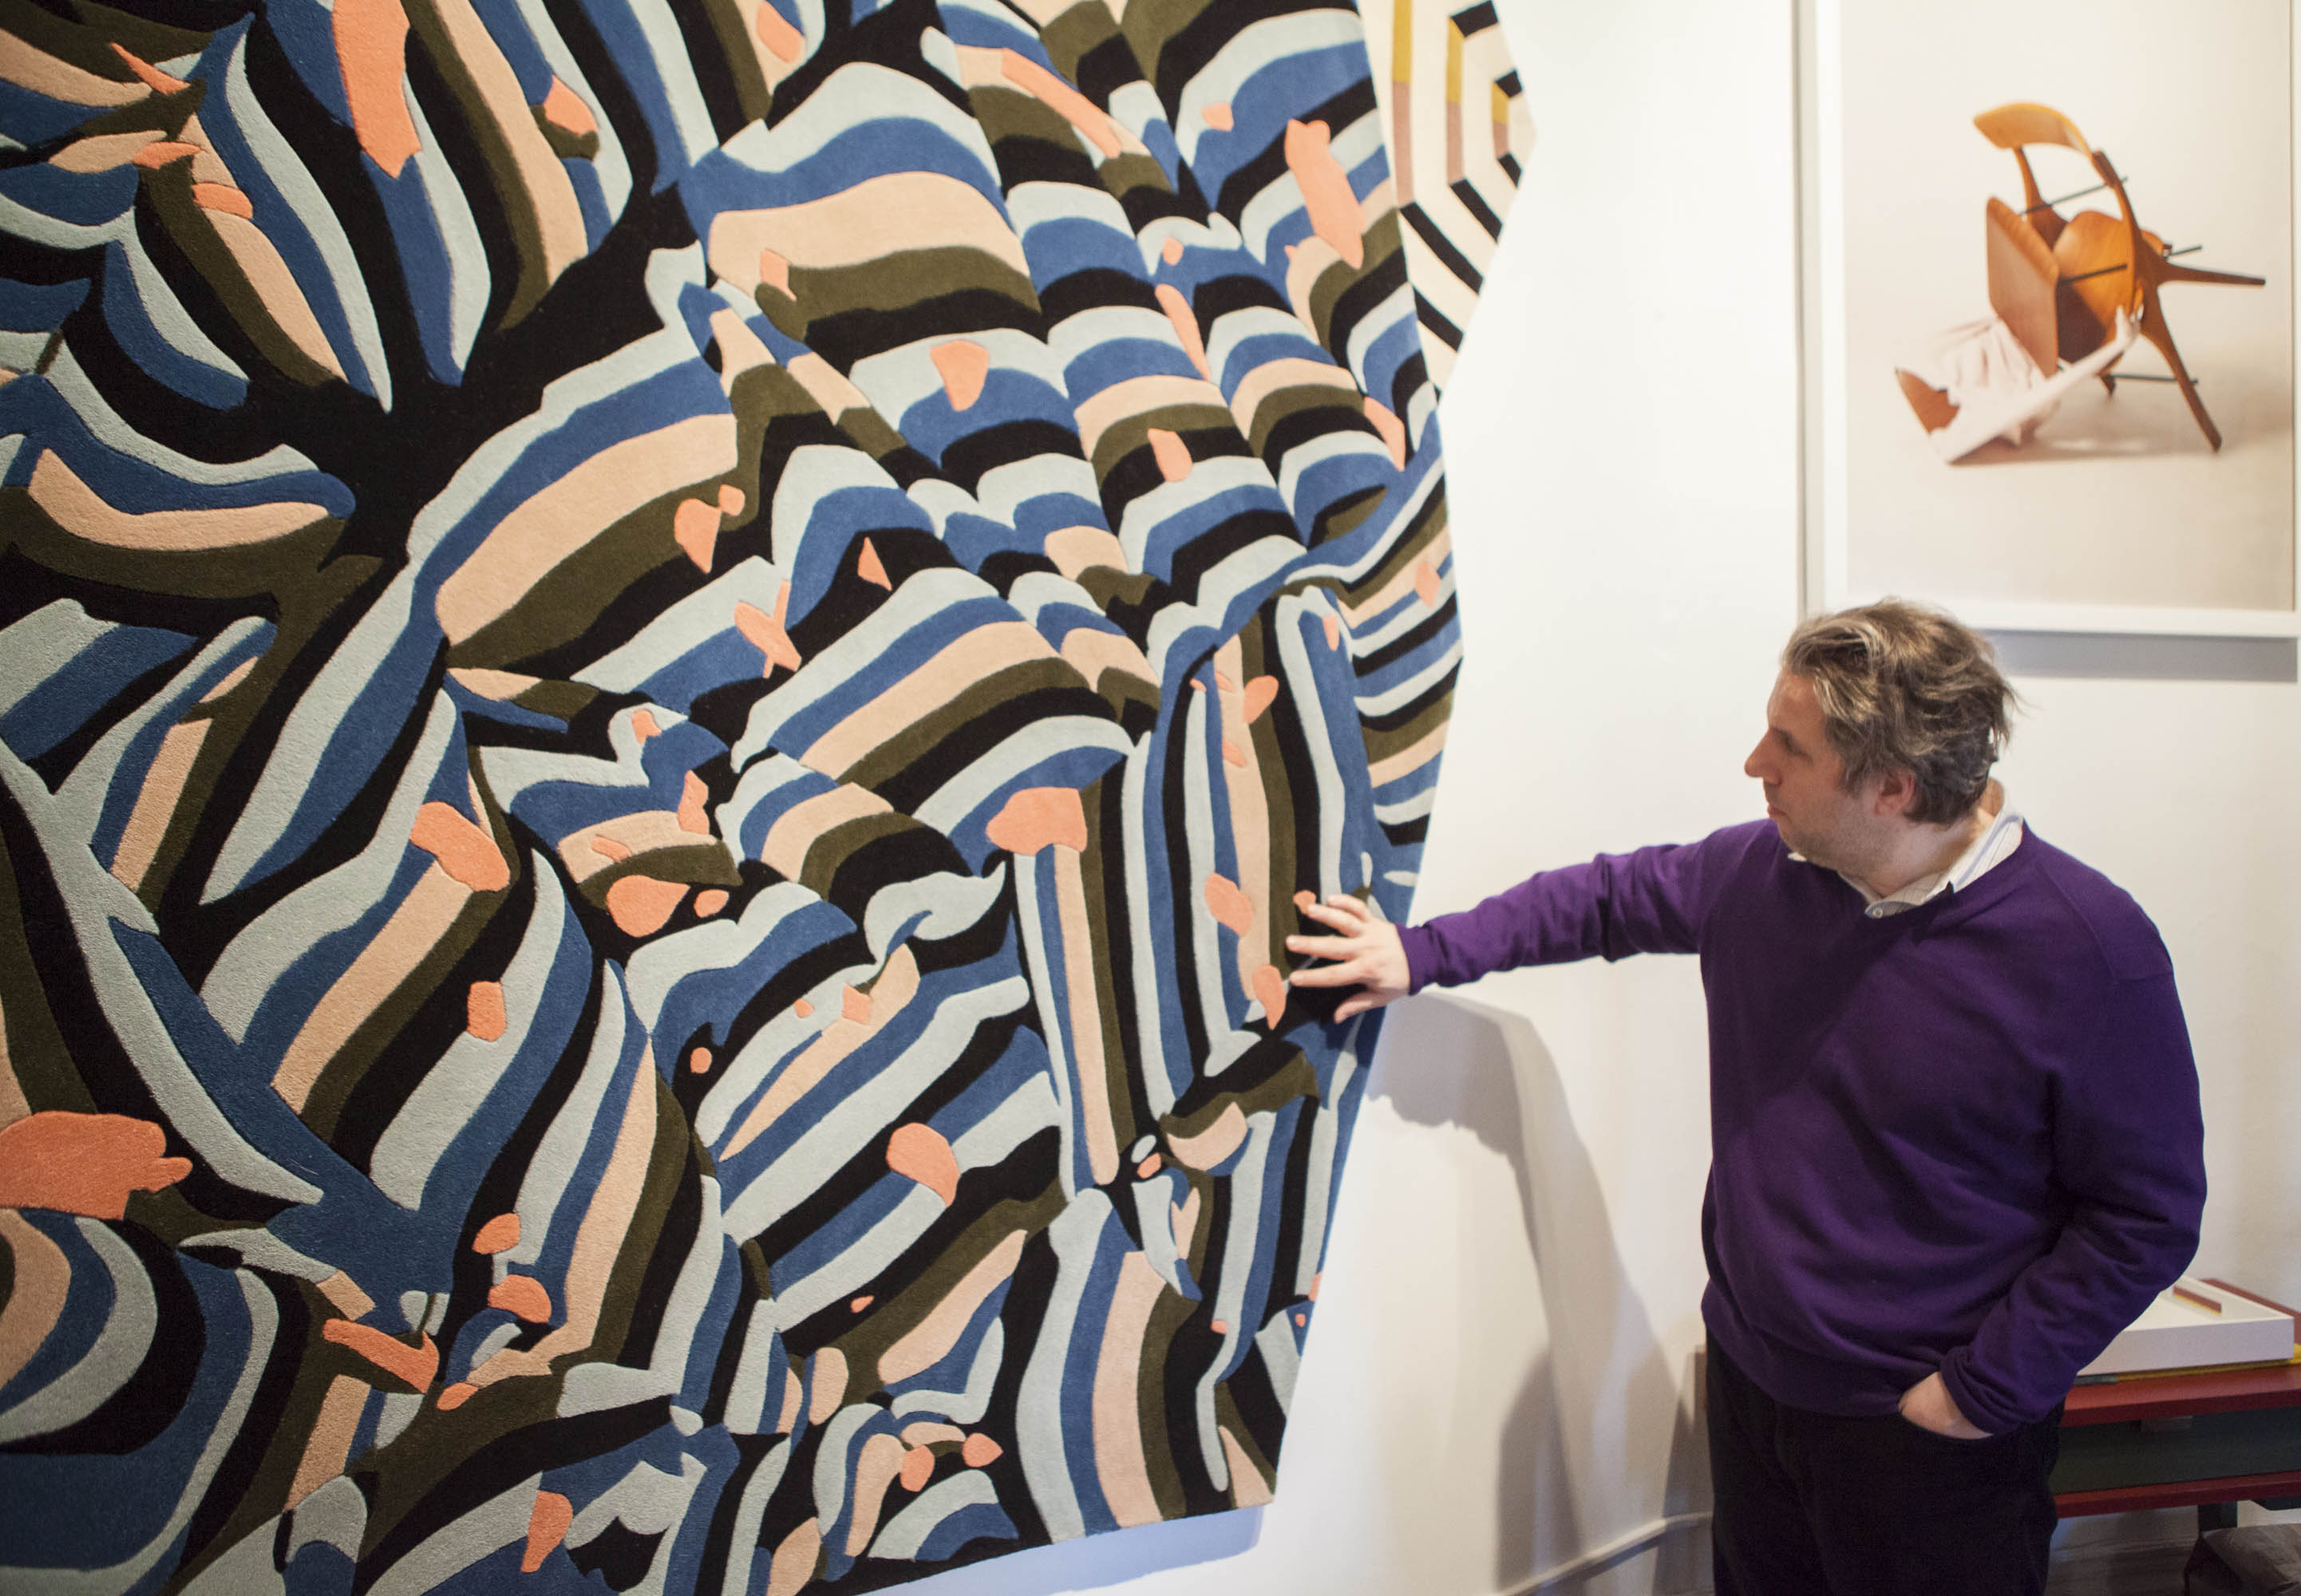 NYSID ASID student Tom Sembros getting a better feel for the 100% New Zealand wool Banner rug